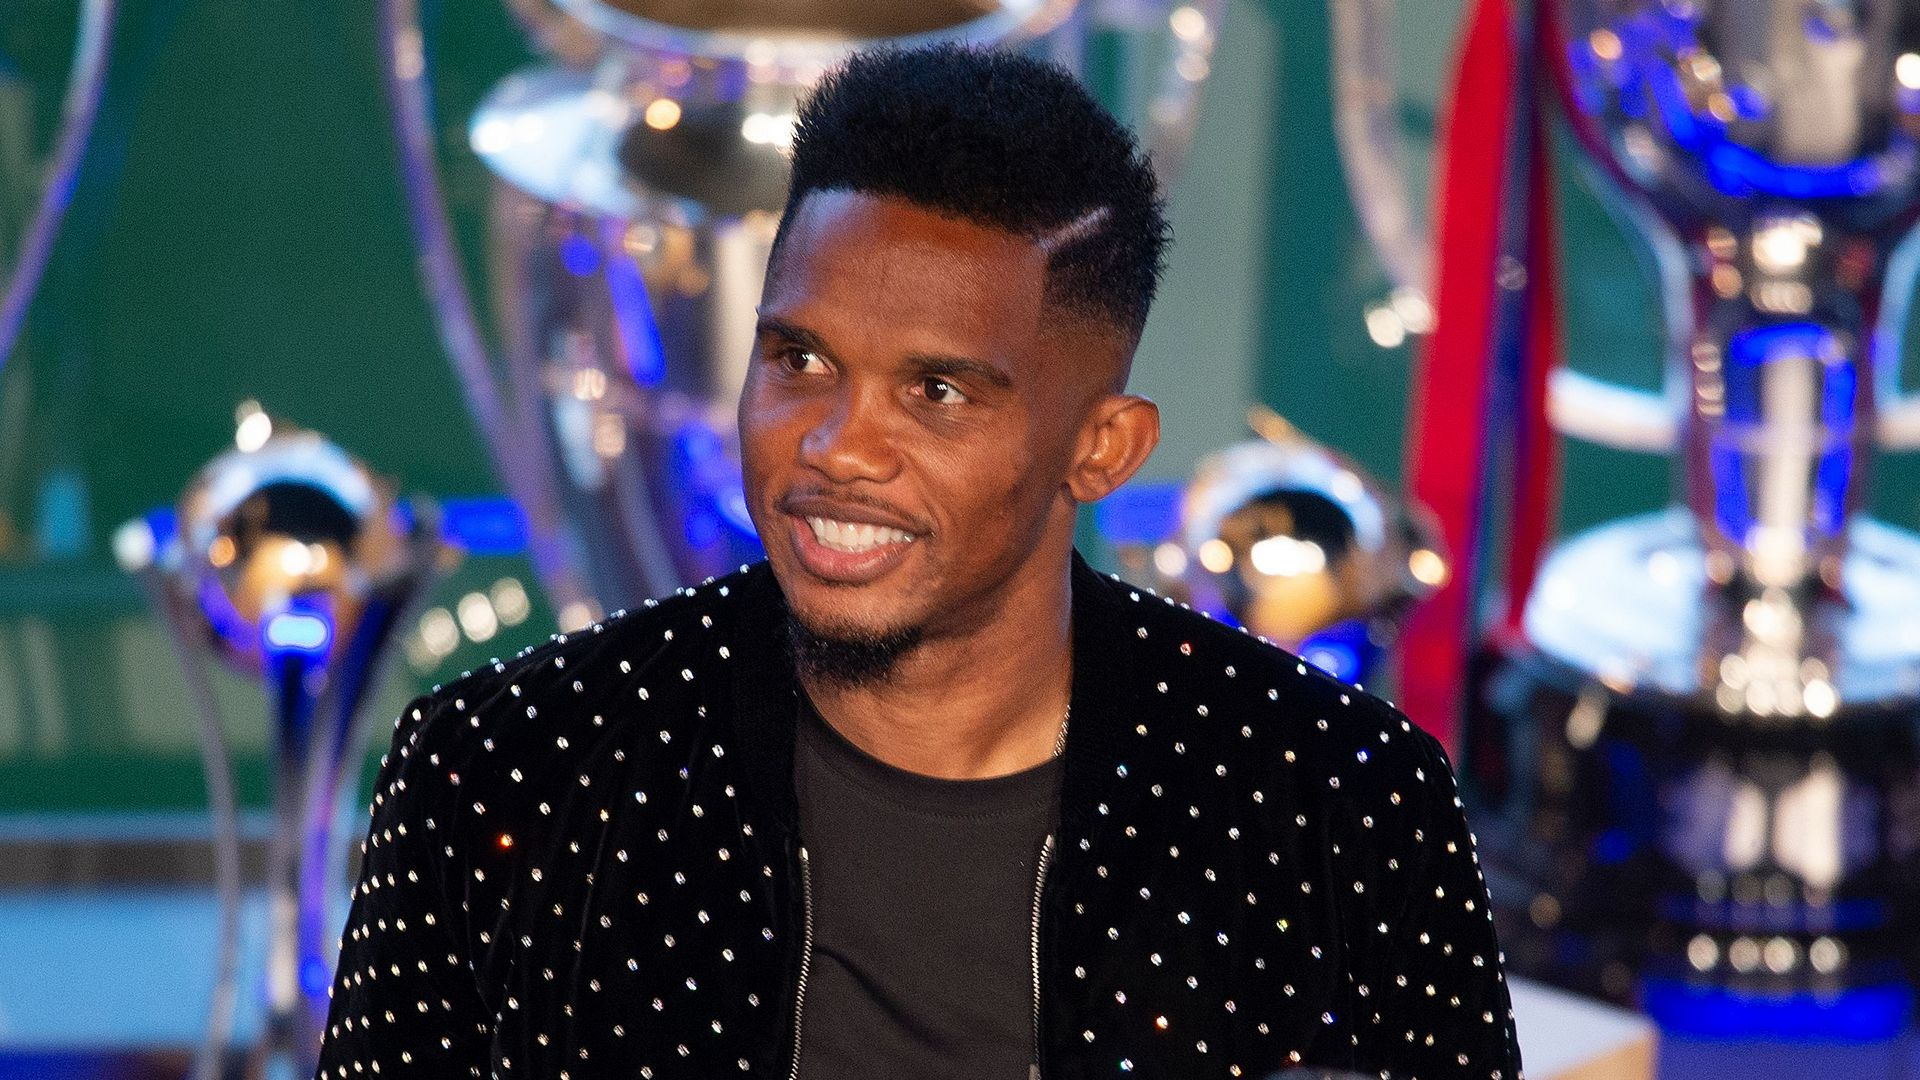 Jose Mourinho: Barcelona legend Samuel Eto'o should have won a Ballon d'Or